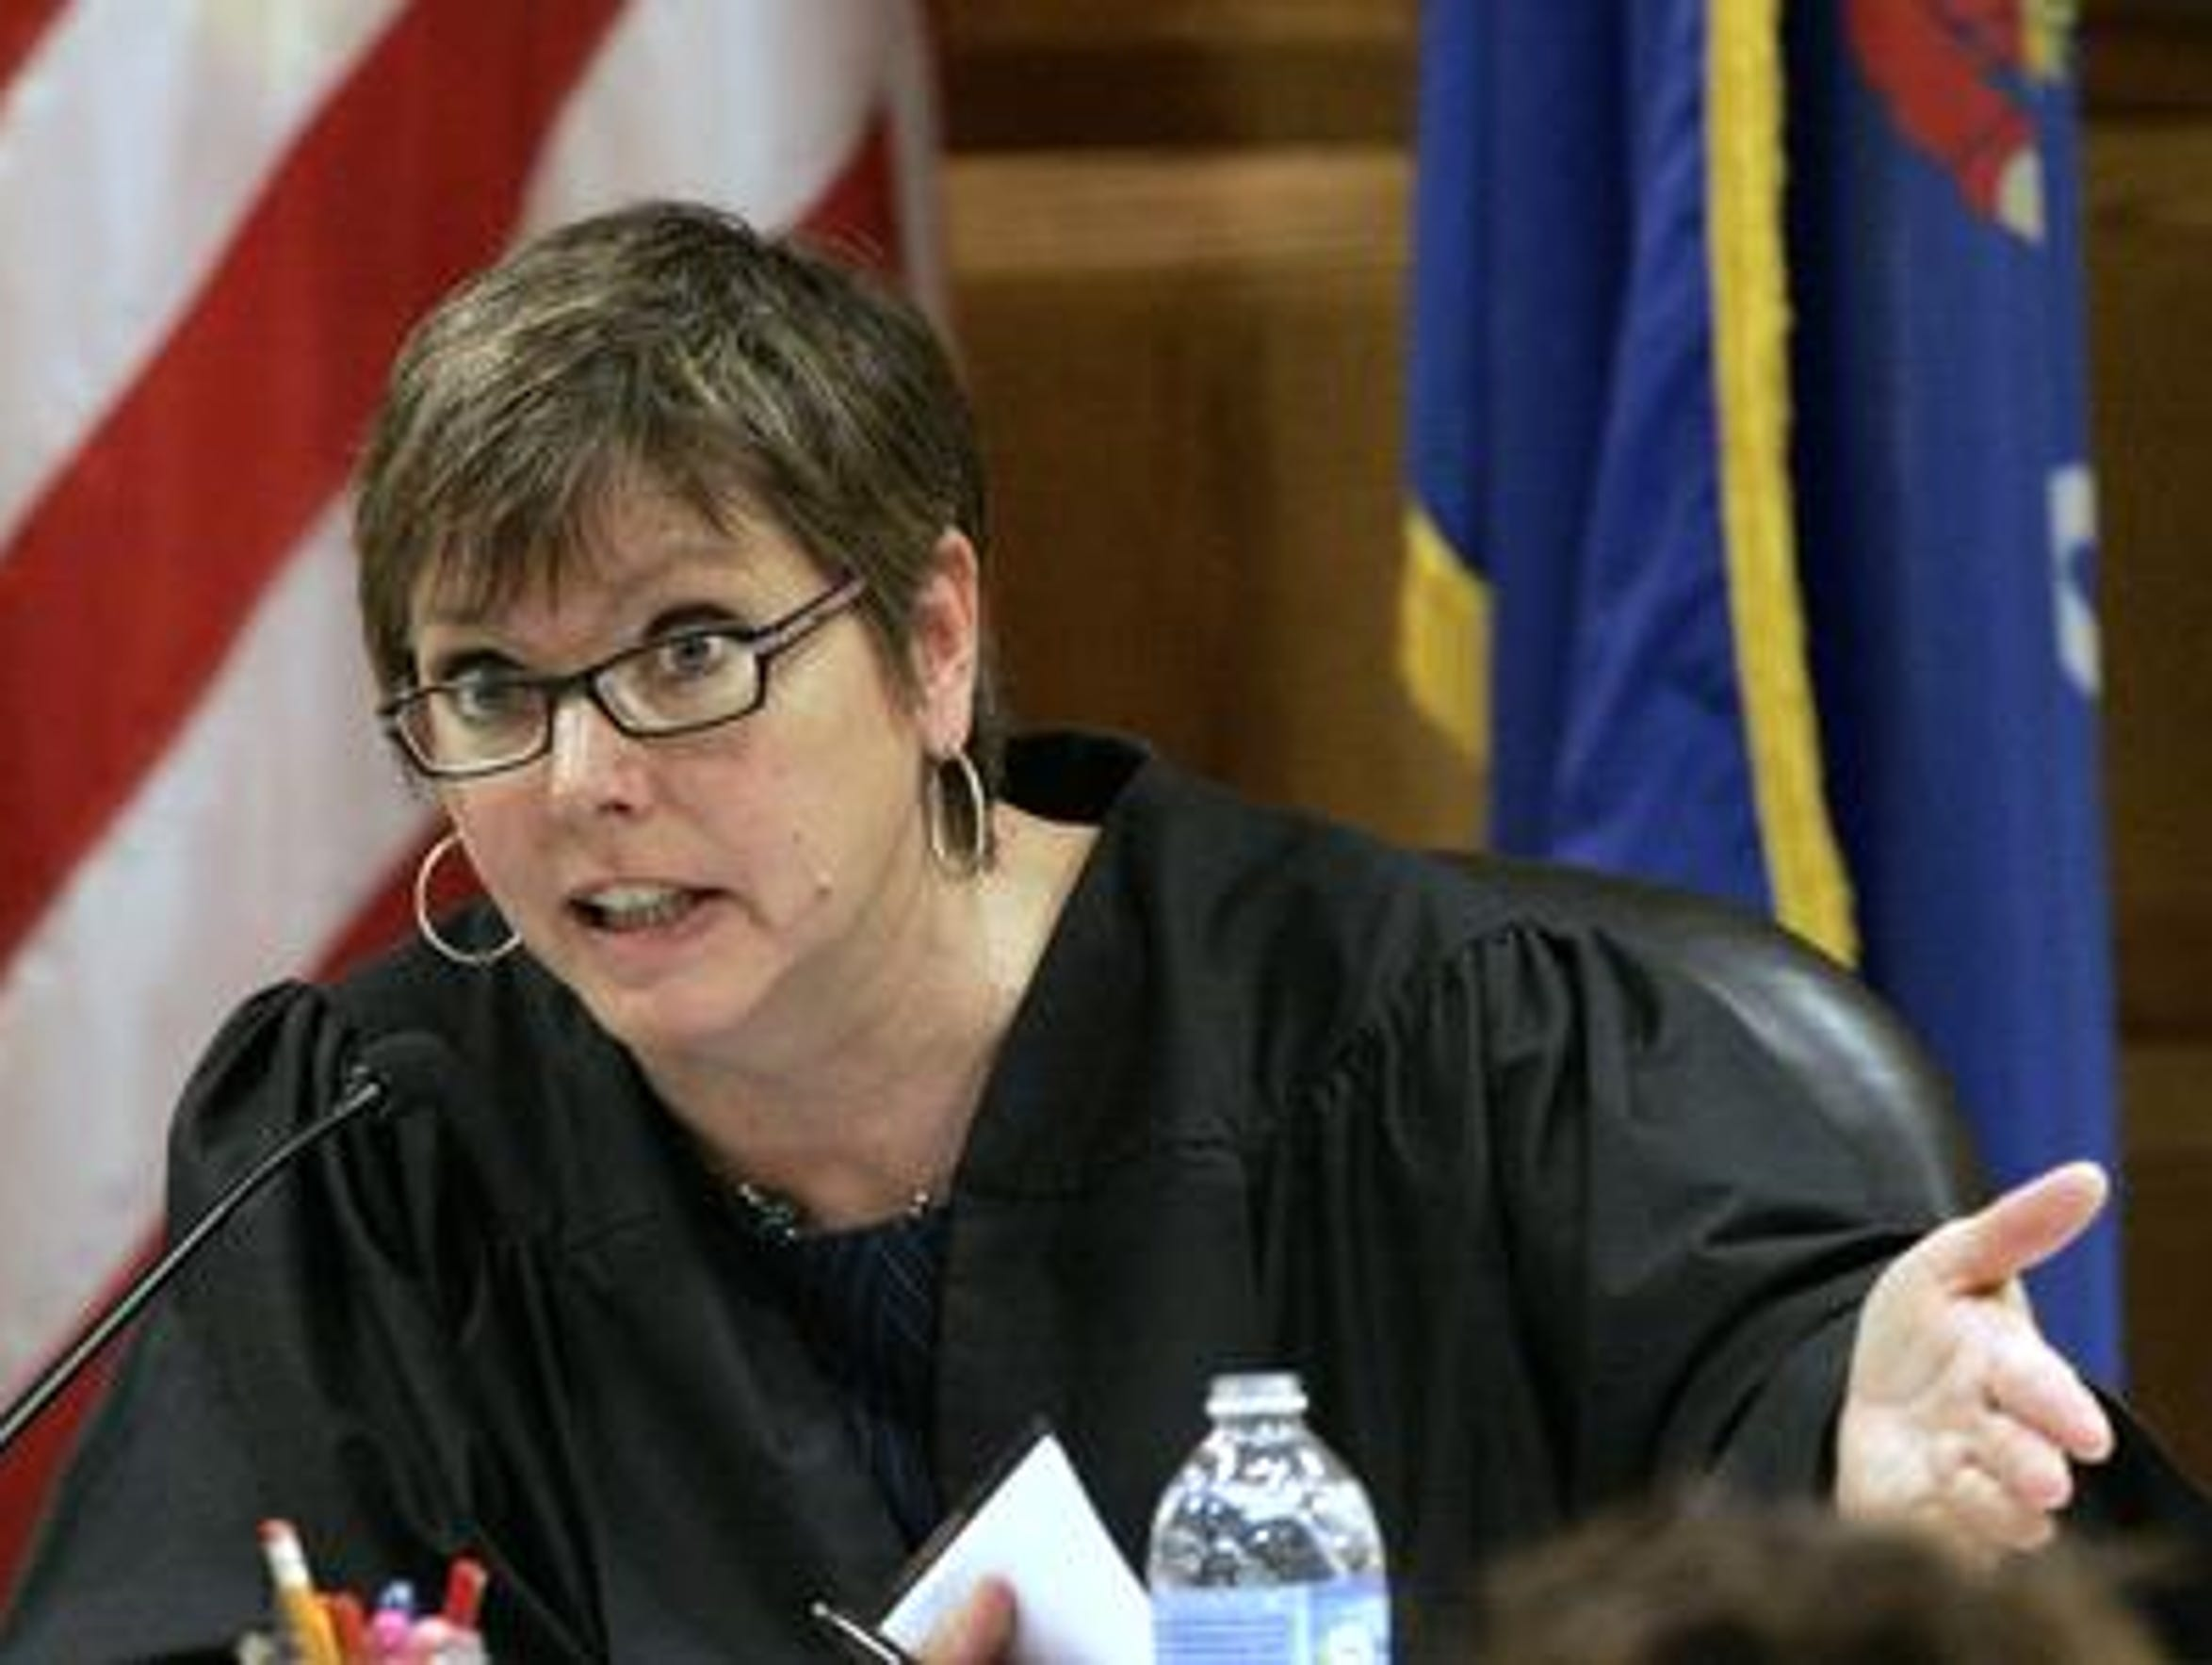 Outagamie County Judge Nancy Krueger sharply criticized